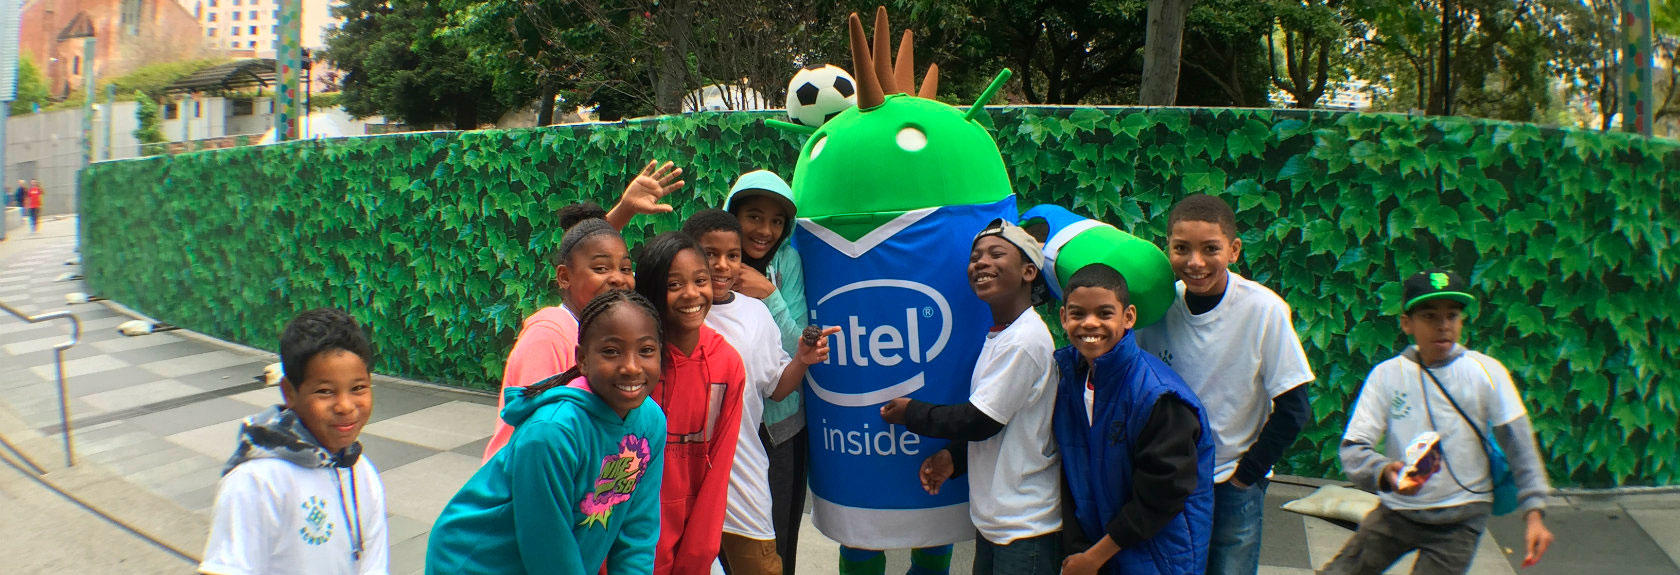 VM Youth with Intel Mascot